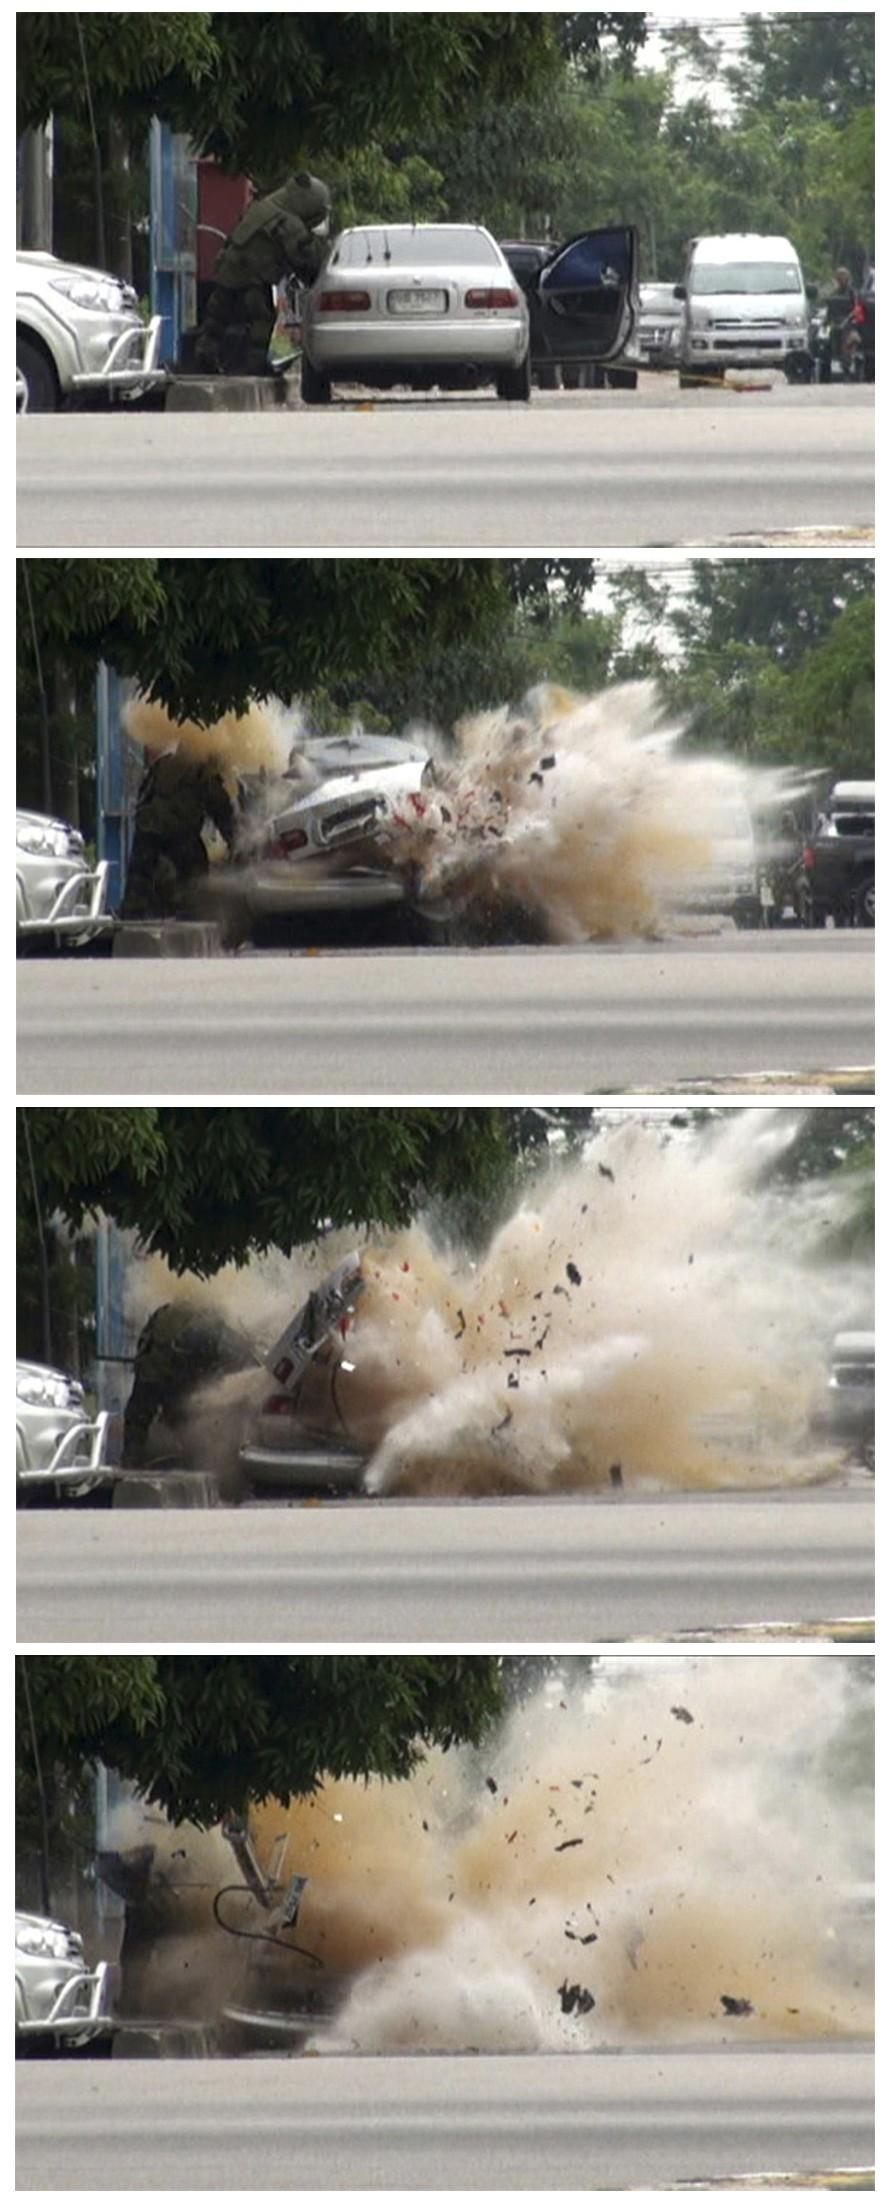 This combination photo shows a car bomb exploding as a member of a Thai bomb squad inspects it in Narathiwat province